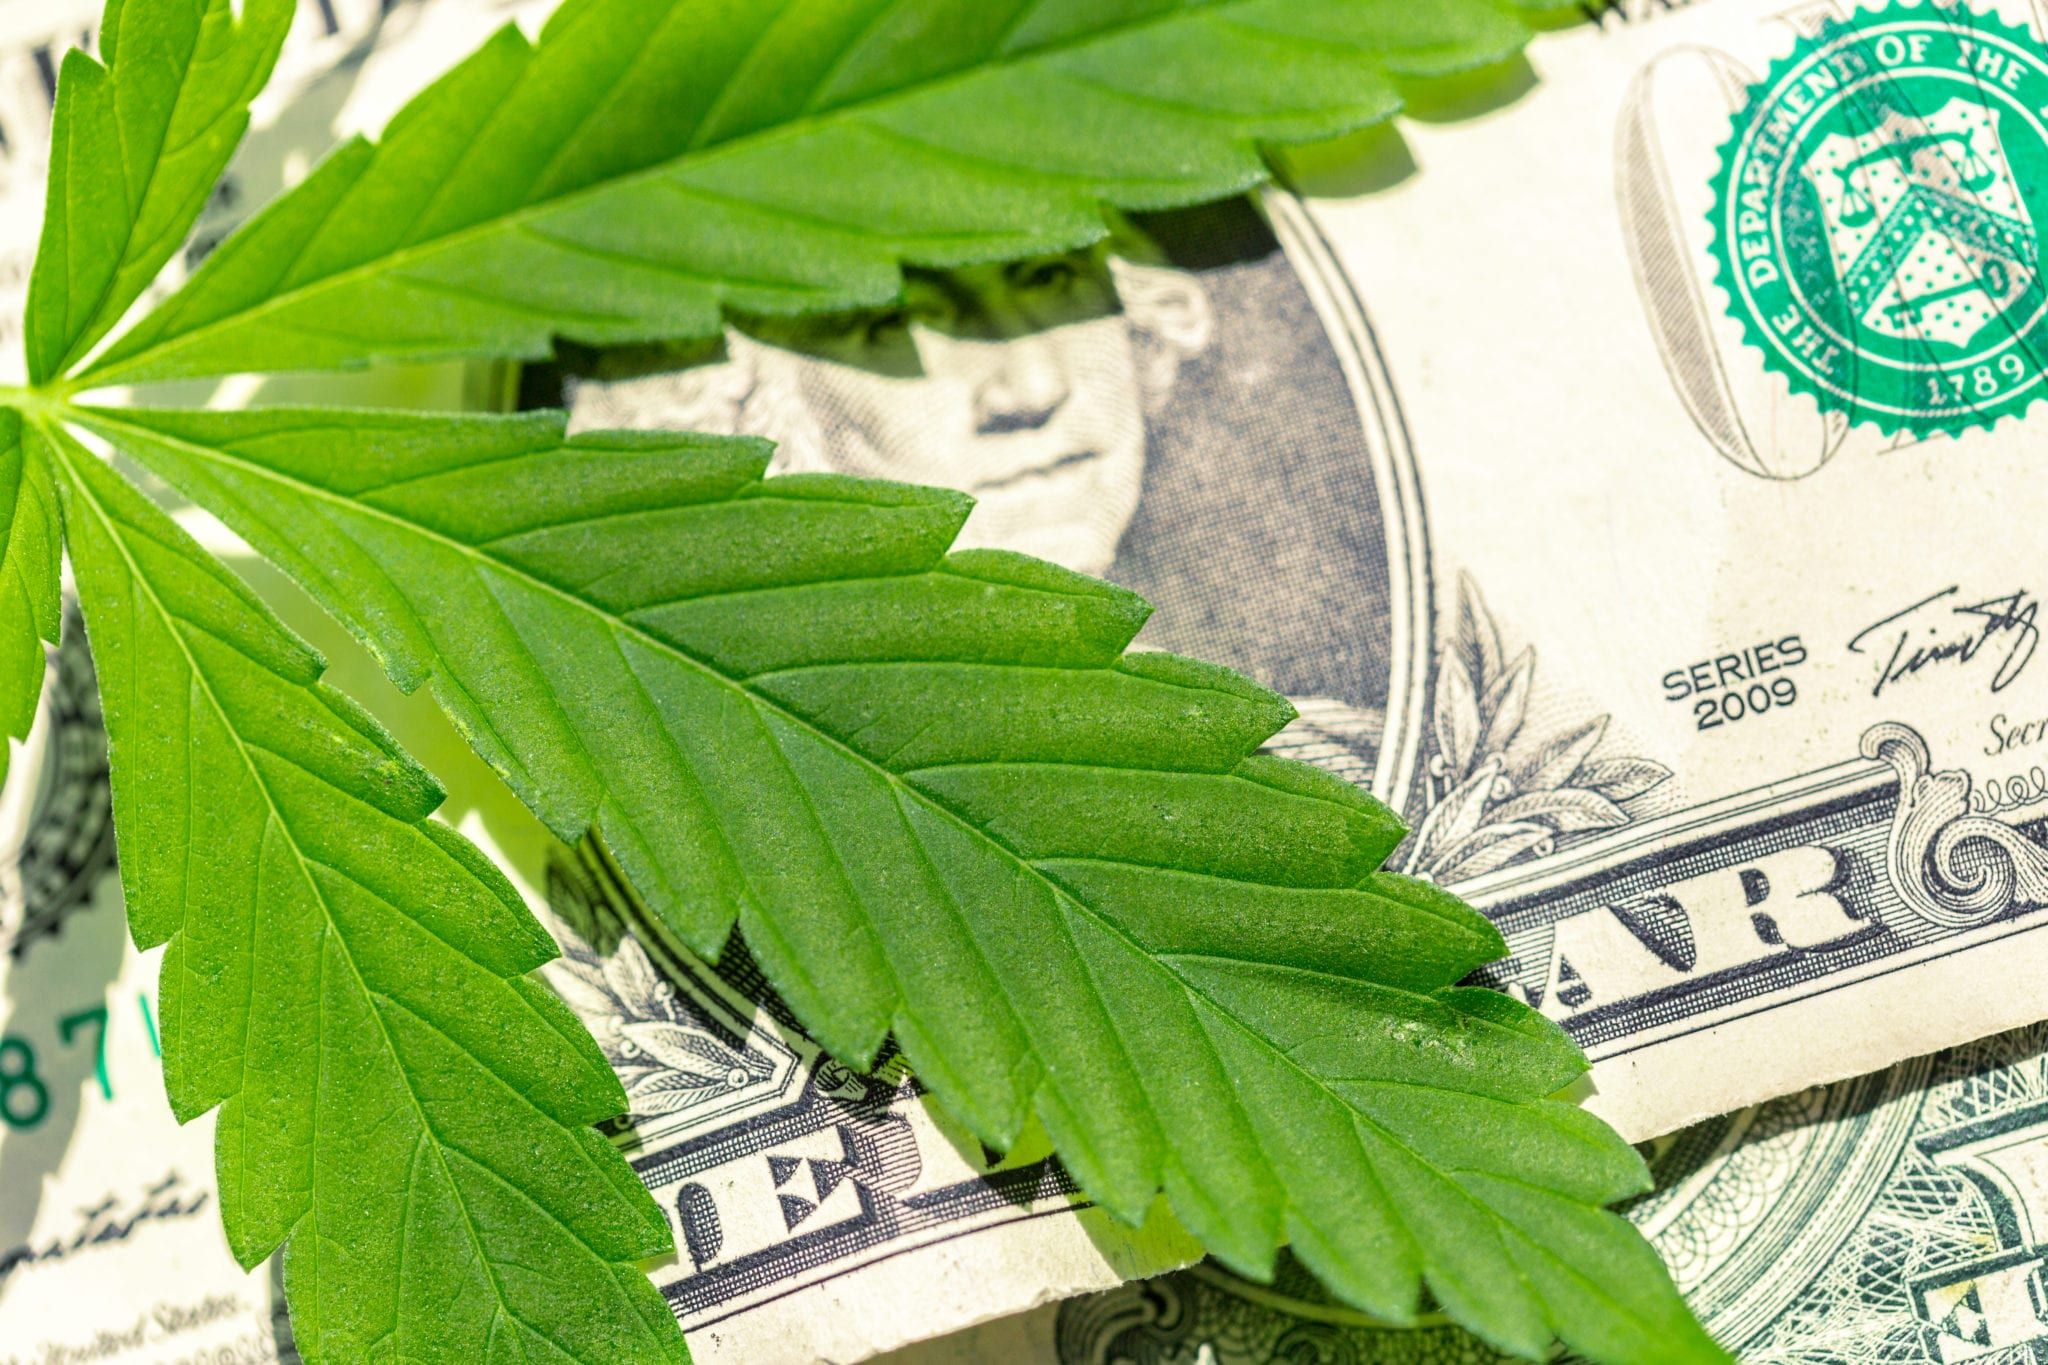 Nevada passed a law last week that will allow a pilot program to test out a limited marijuana banking system, while a federal marijuana banking bill quietly moves forward in the House.